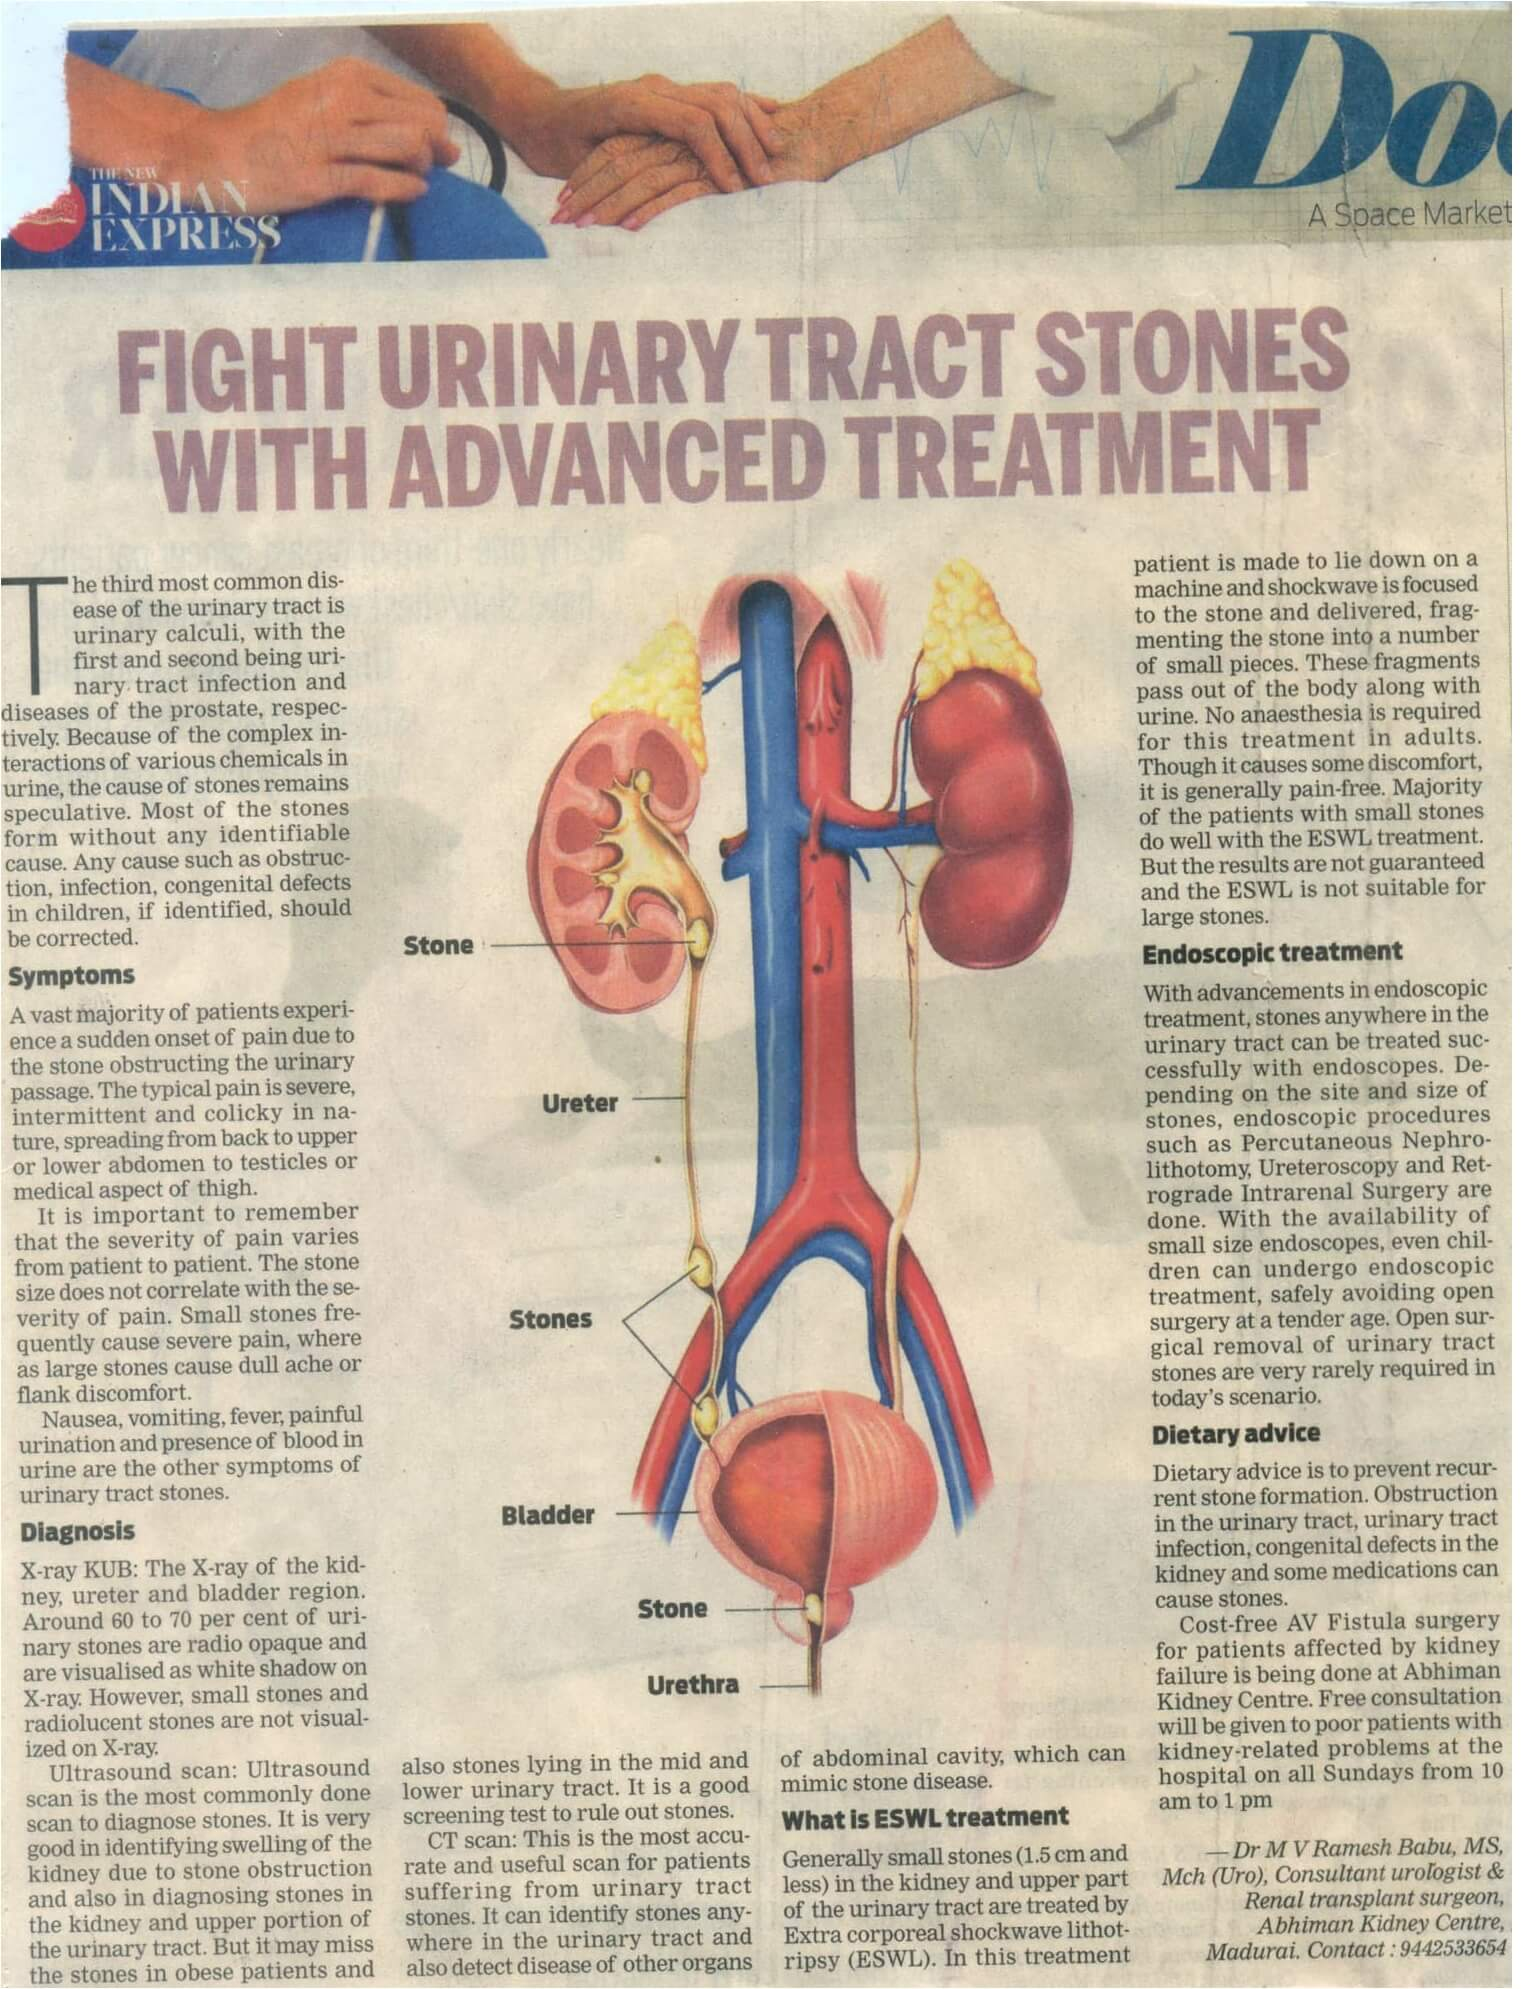 Abhiman Kidney Center